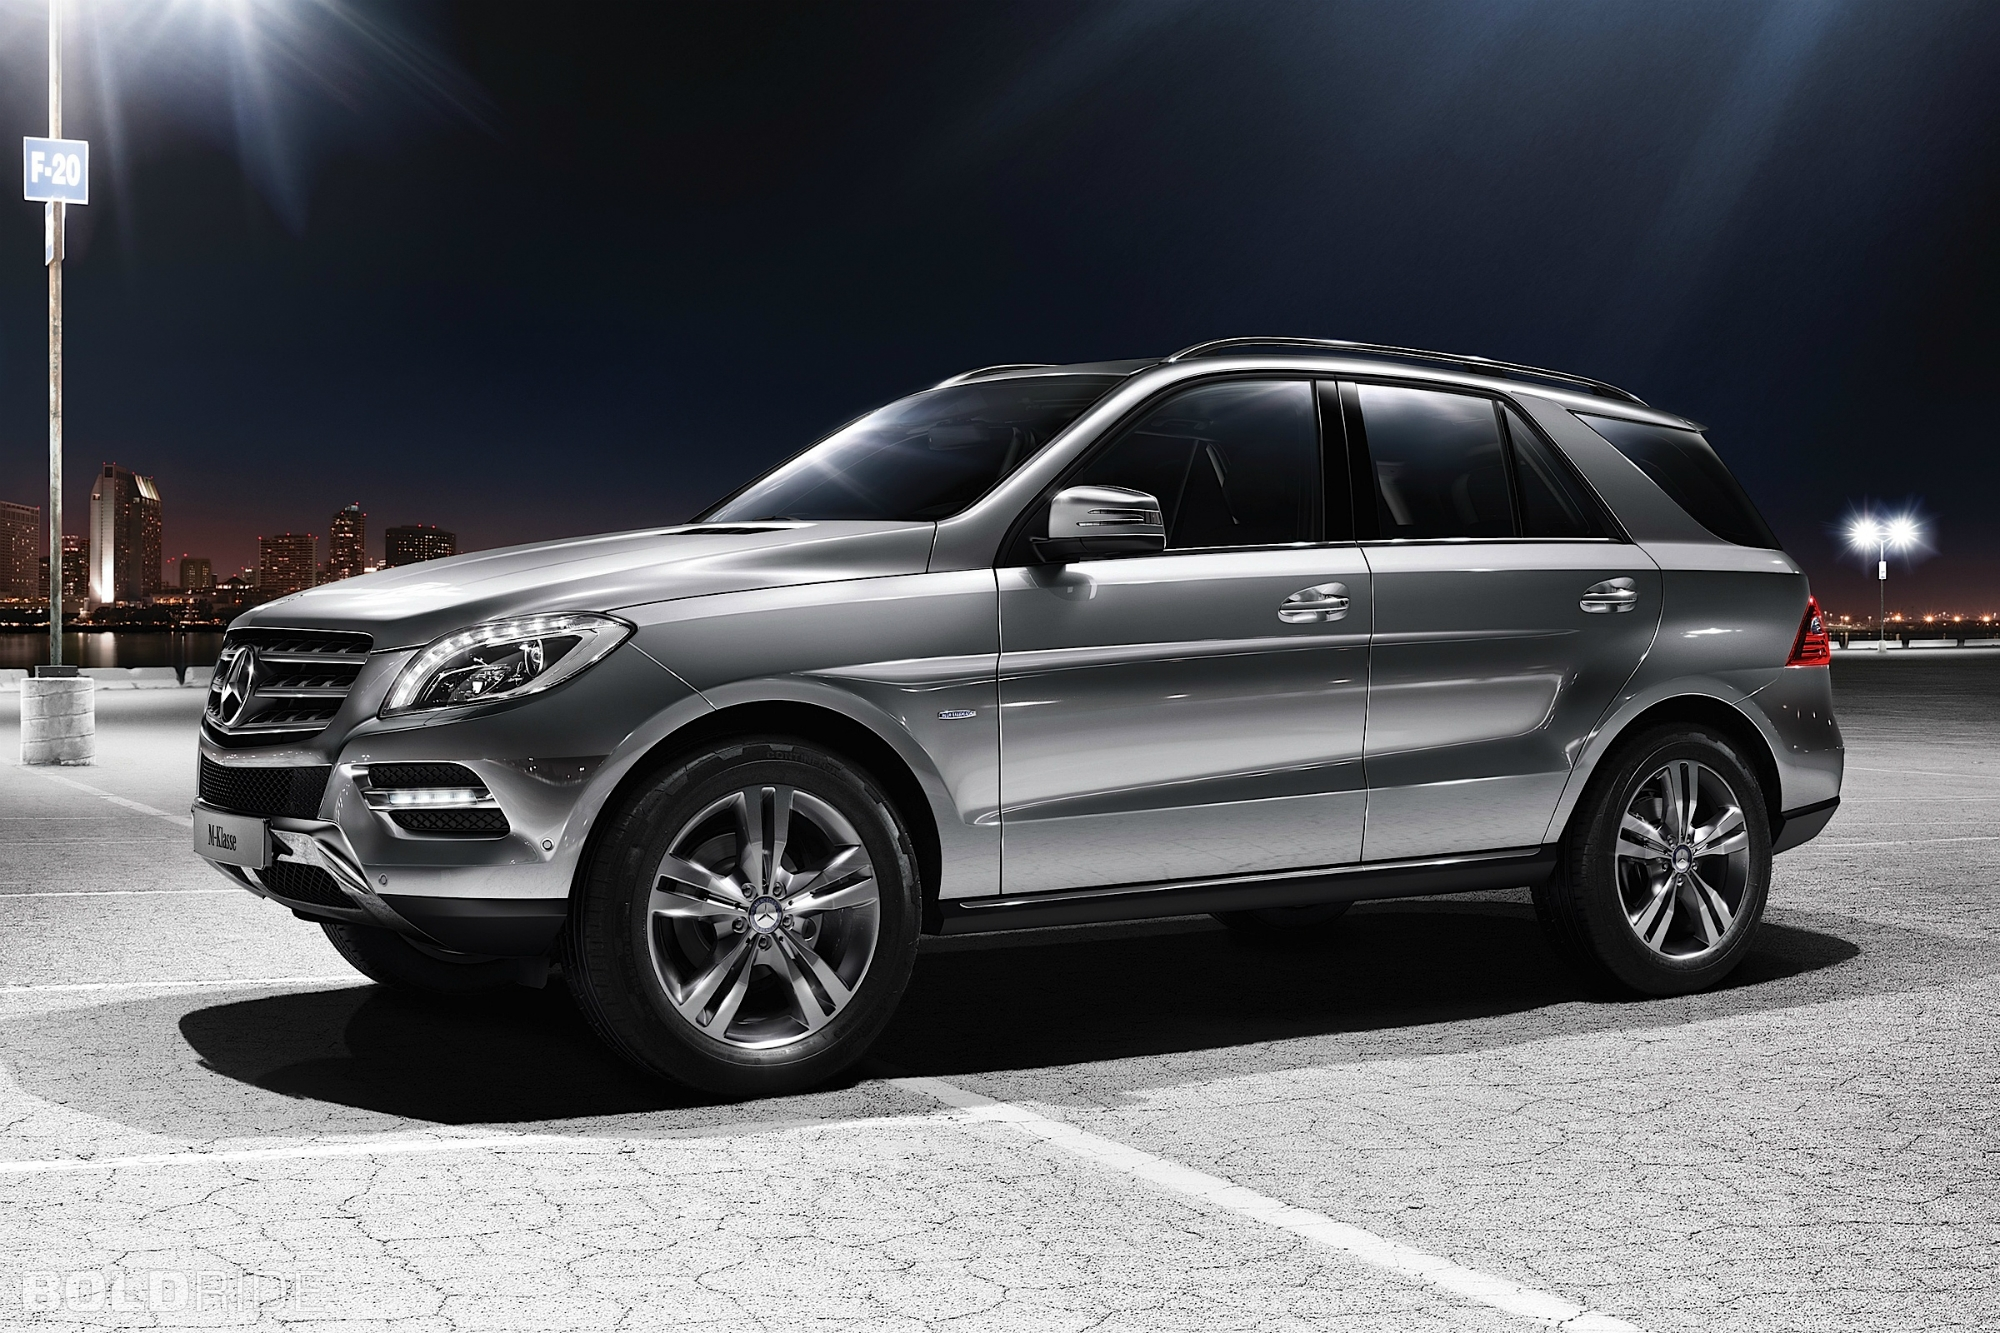 mercedes benz ml 500 4matic photos reviews news specs buy car. Black Bedroom Furniture Sets. Home Design Ideas